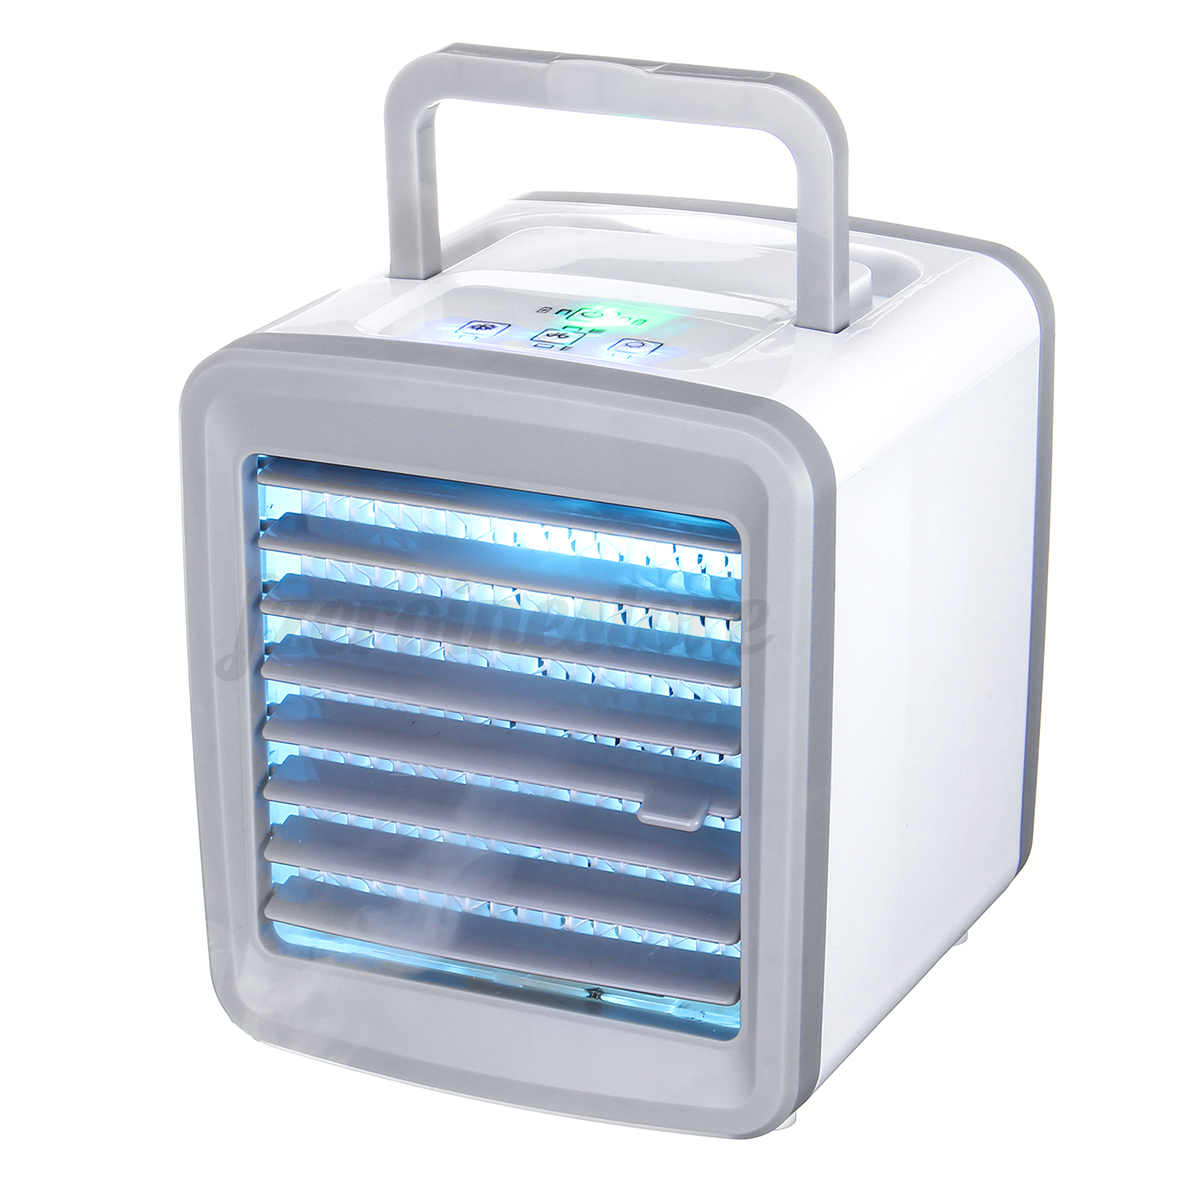 Mini-Air-Conditioner-Cooler-Humidifier-Spray-Fan-Portable-Cooling-Home-amp-Office thumbnail 13